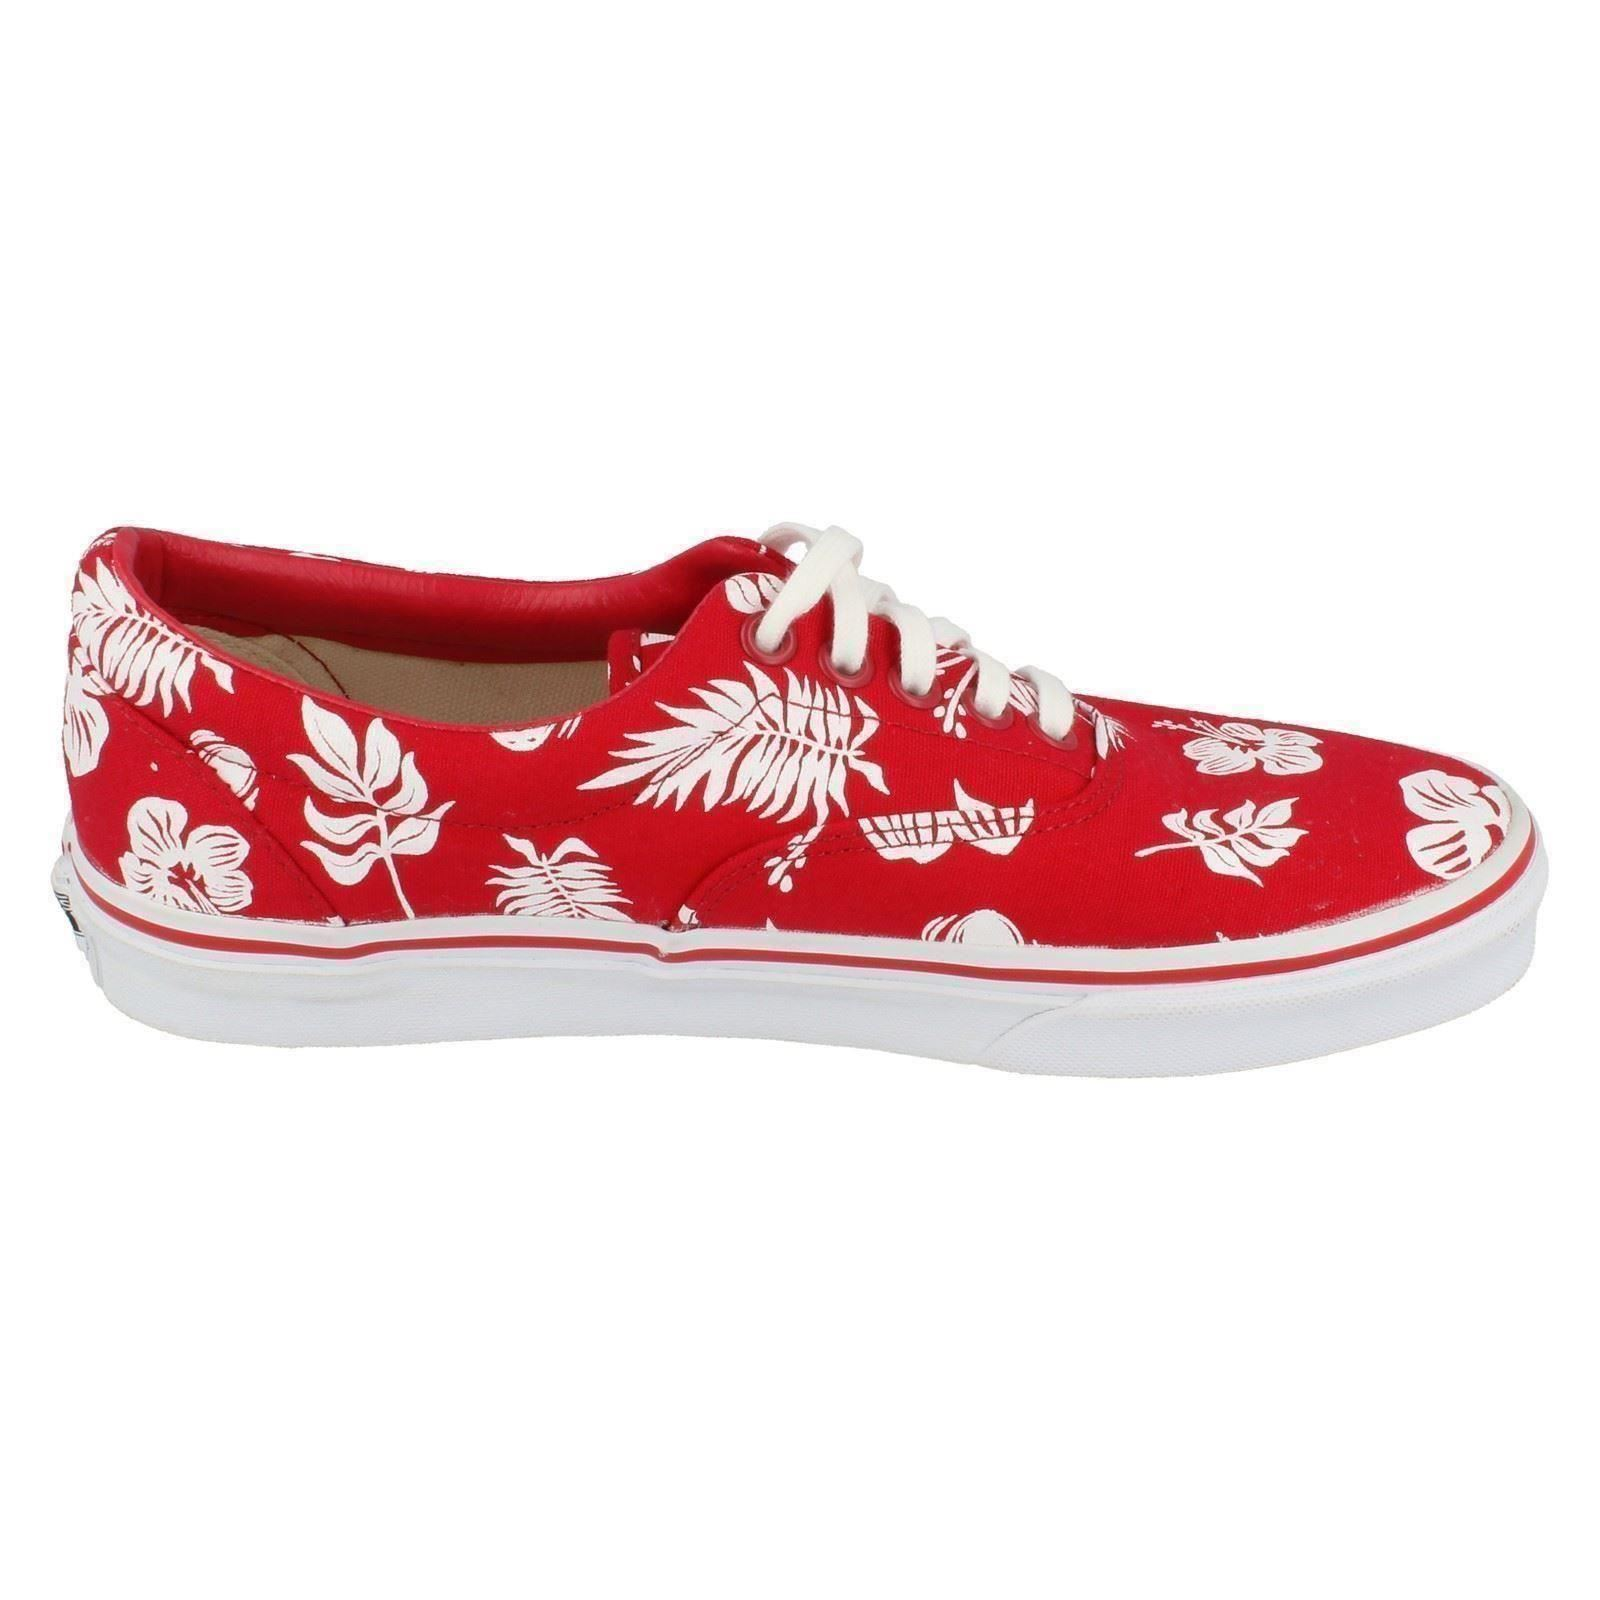 b46470437d VANS Mens Casual Tropicoco White True Red Canvas Shoes W3cen9 UK 6 ...